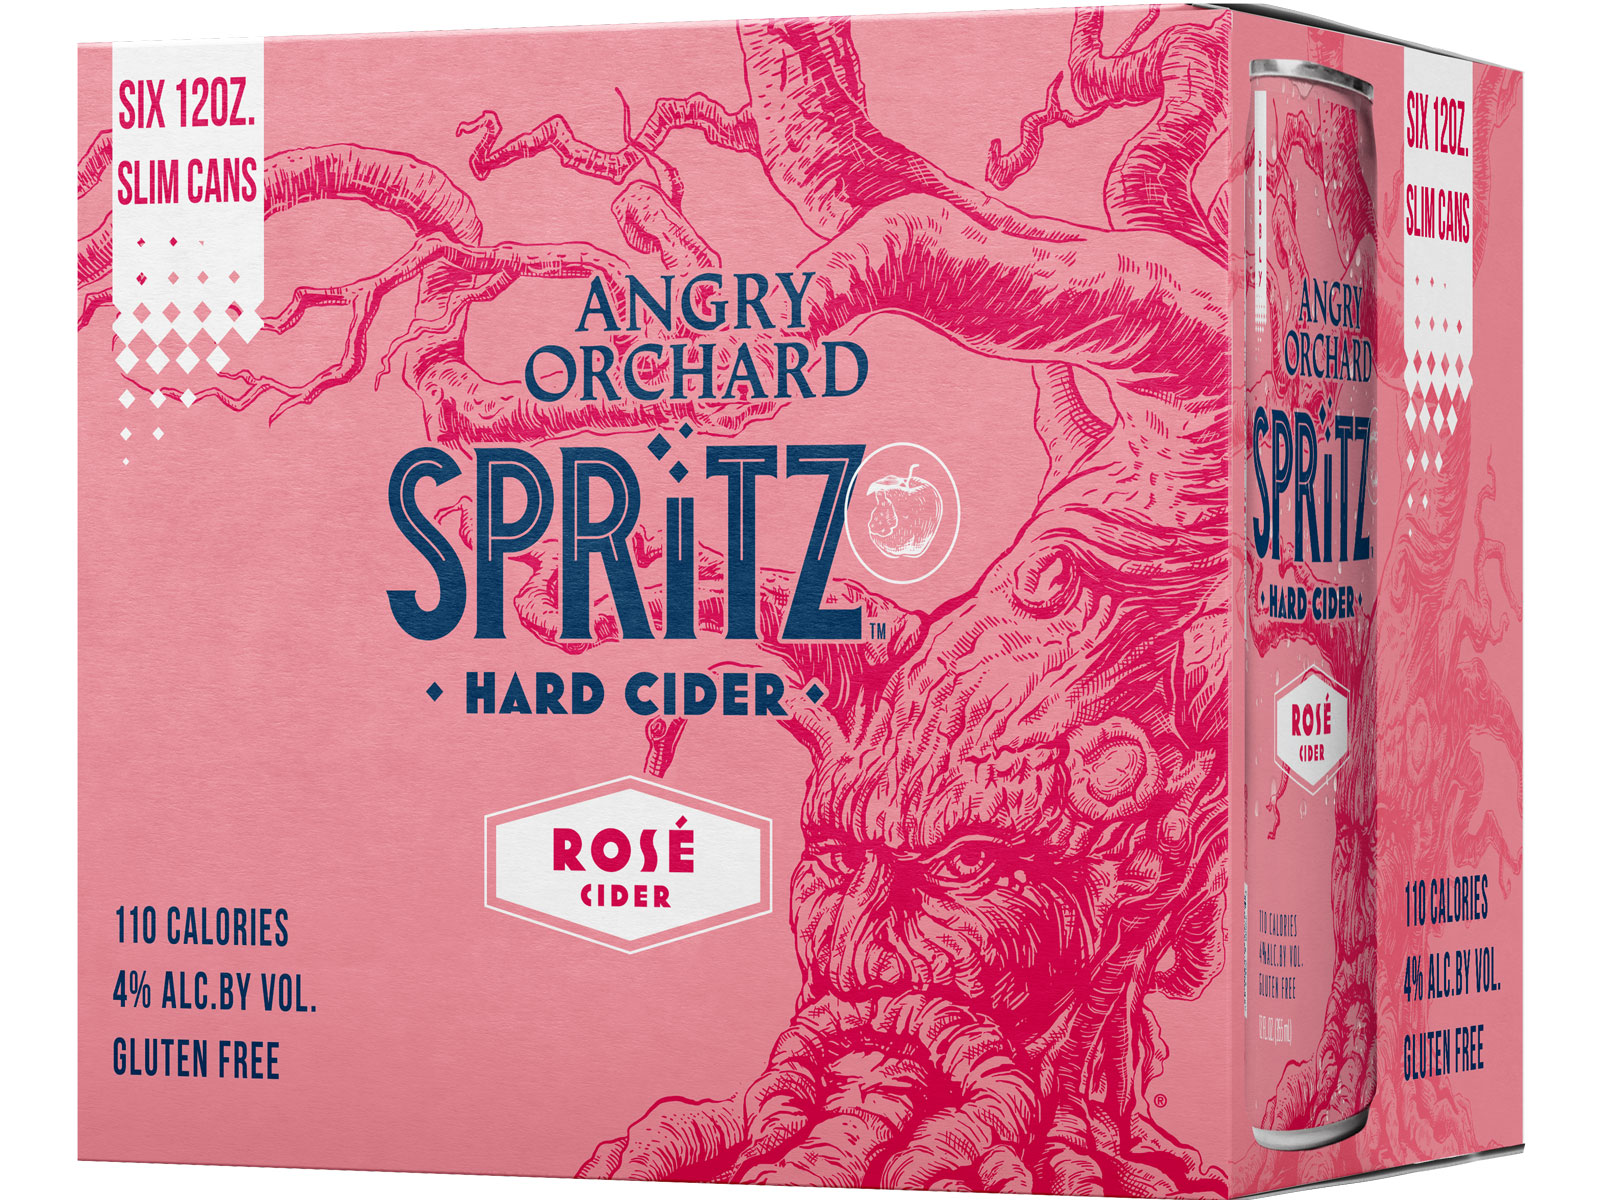 We Tried Angry Orchard's New Spritz Rosé Cider, and It's Like a Low-ABV Seltzer